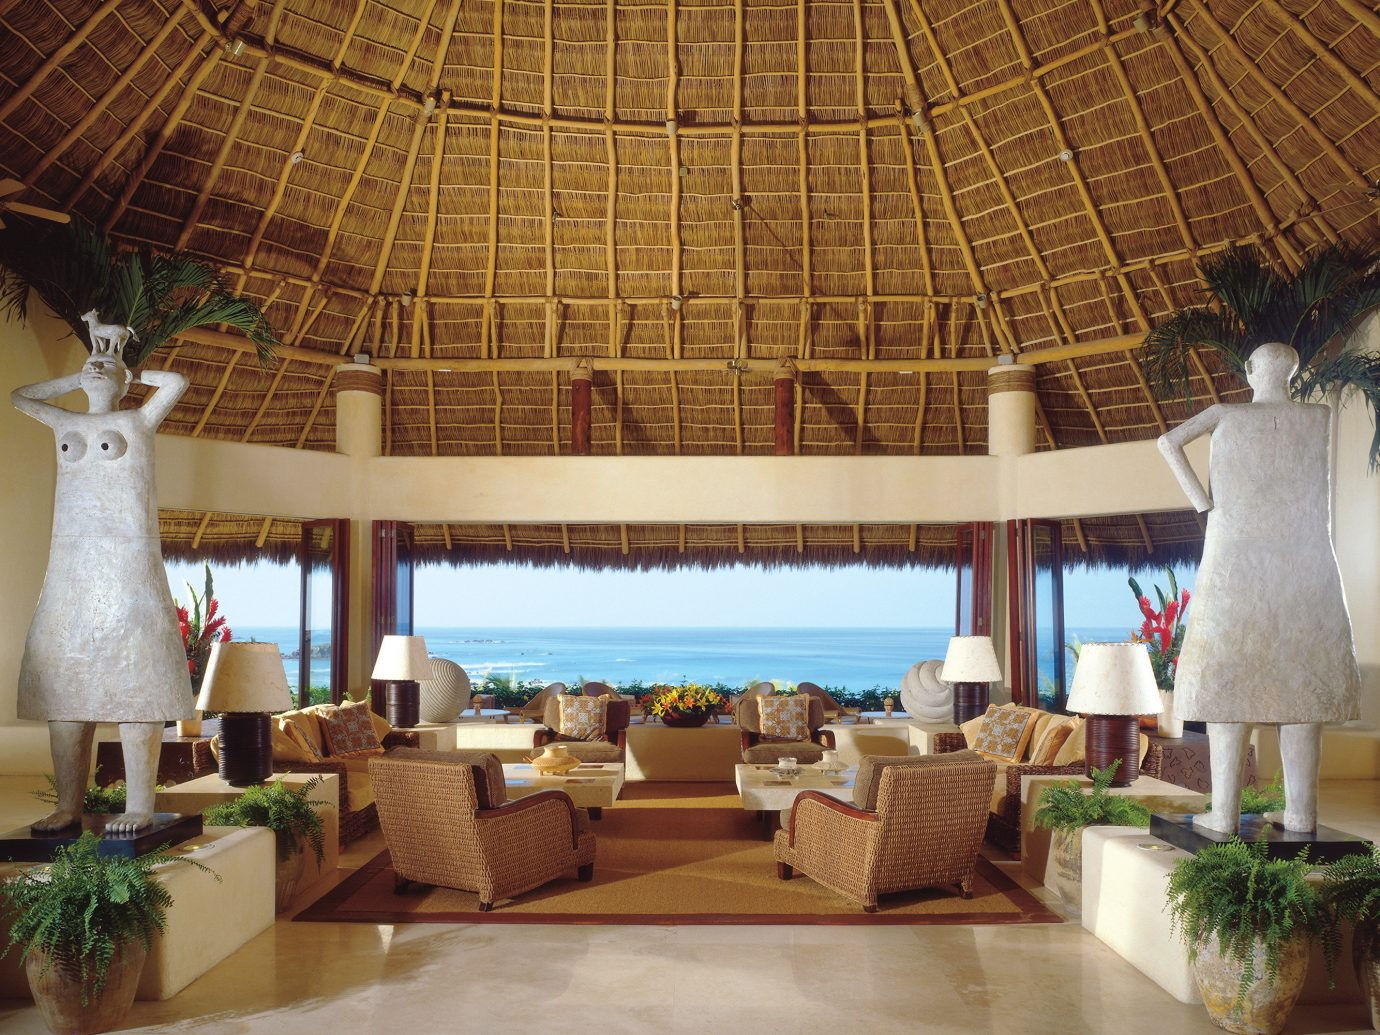 Hip Hotels Living Lounge Luxury Scenic views Tropical indoor Resort estate function hall interior design restaurant hacienda palace Villa furniture dome area